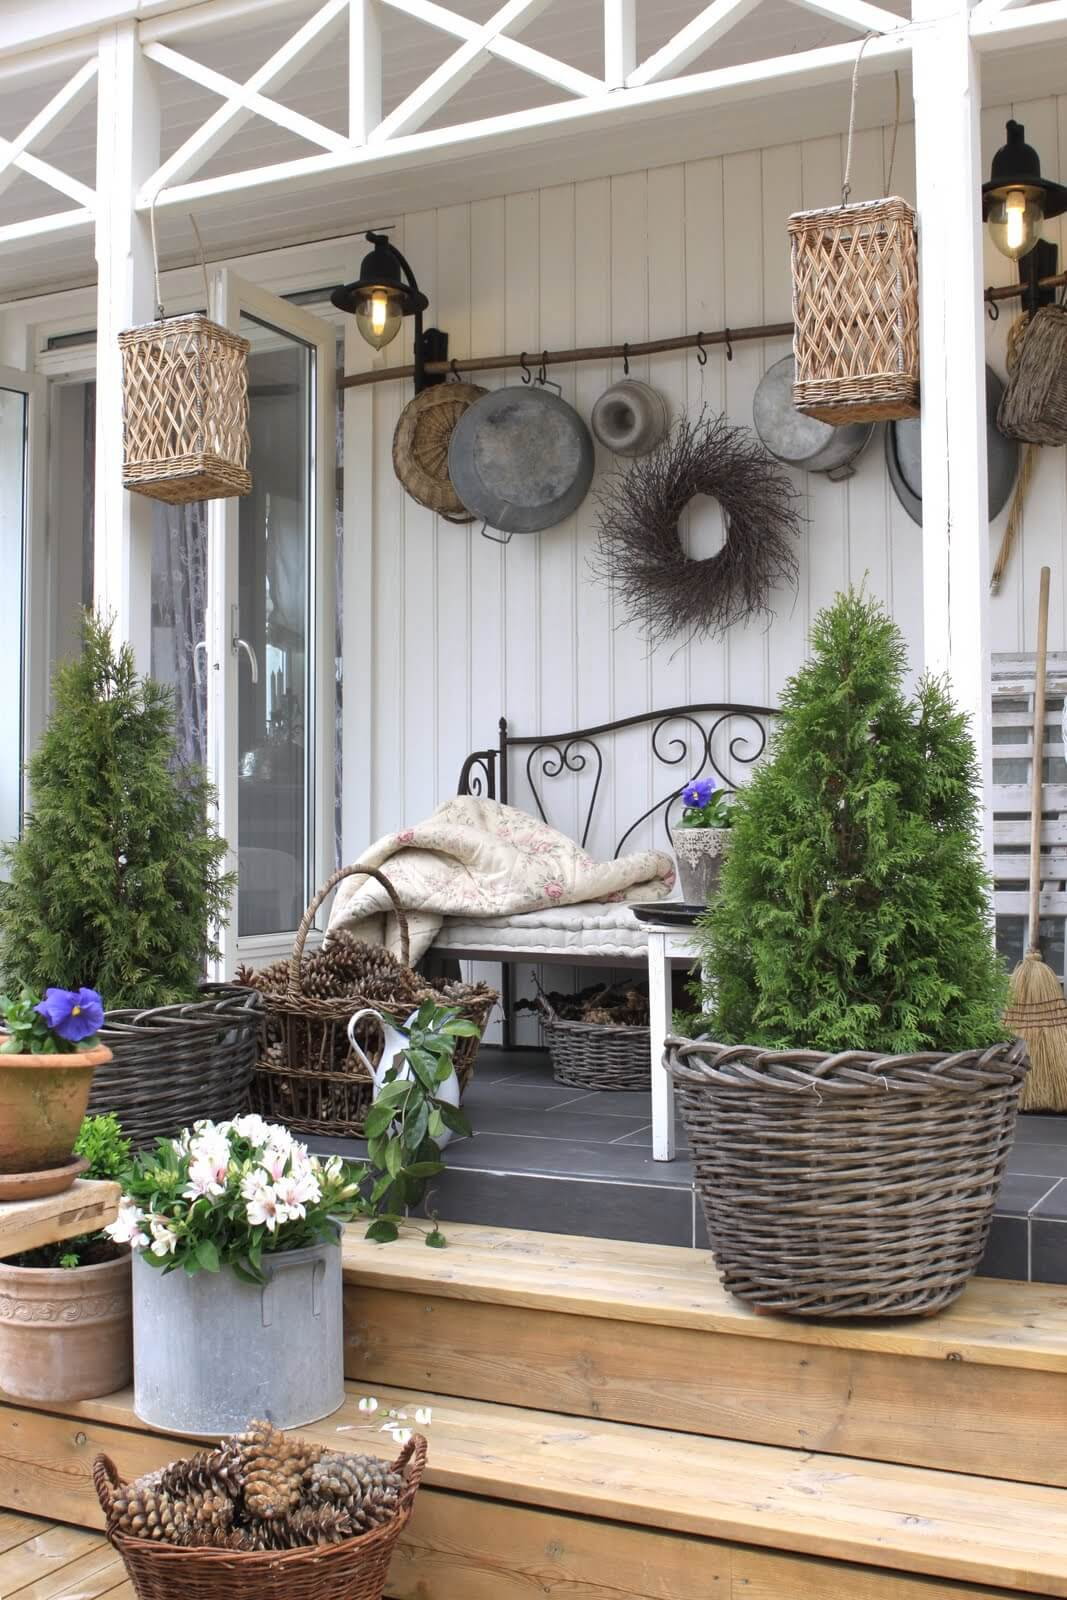 A Walk In The Woods: Rustic Wicker & Pinecone Porch Decor